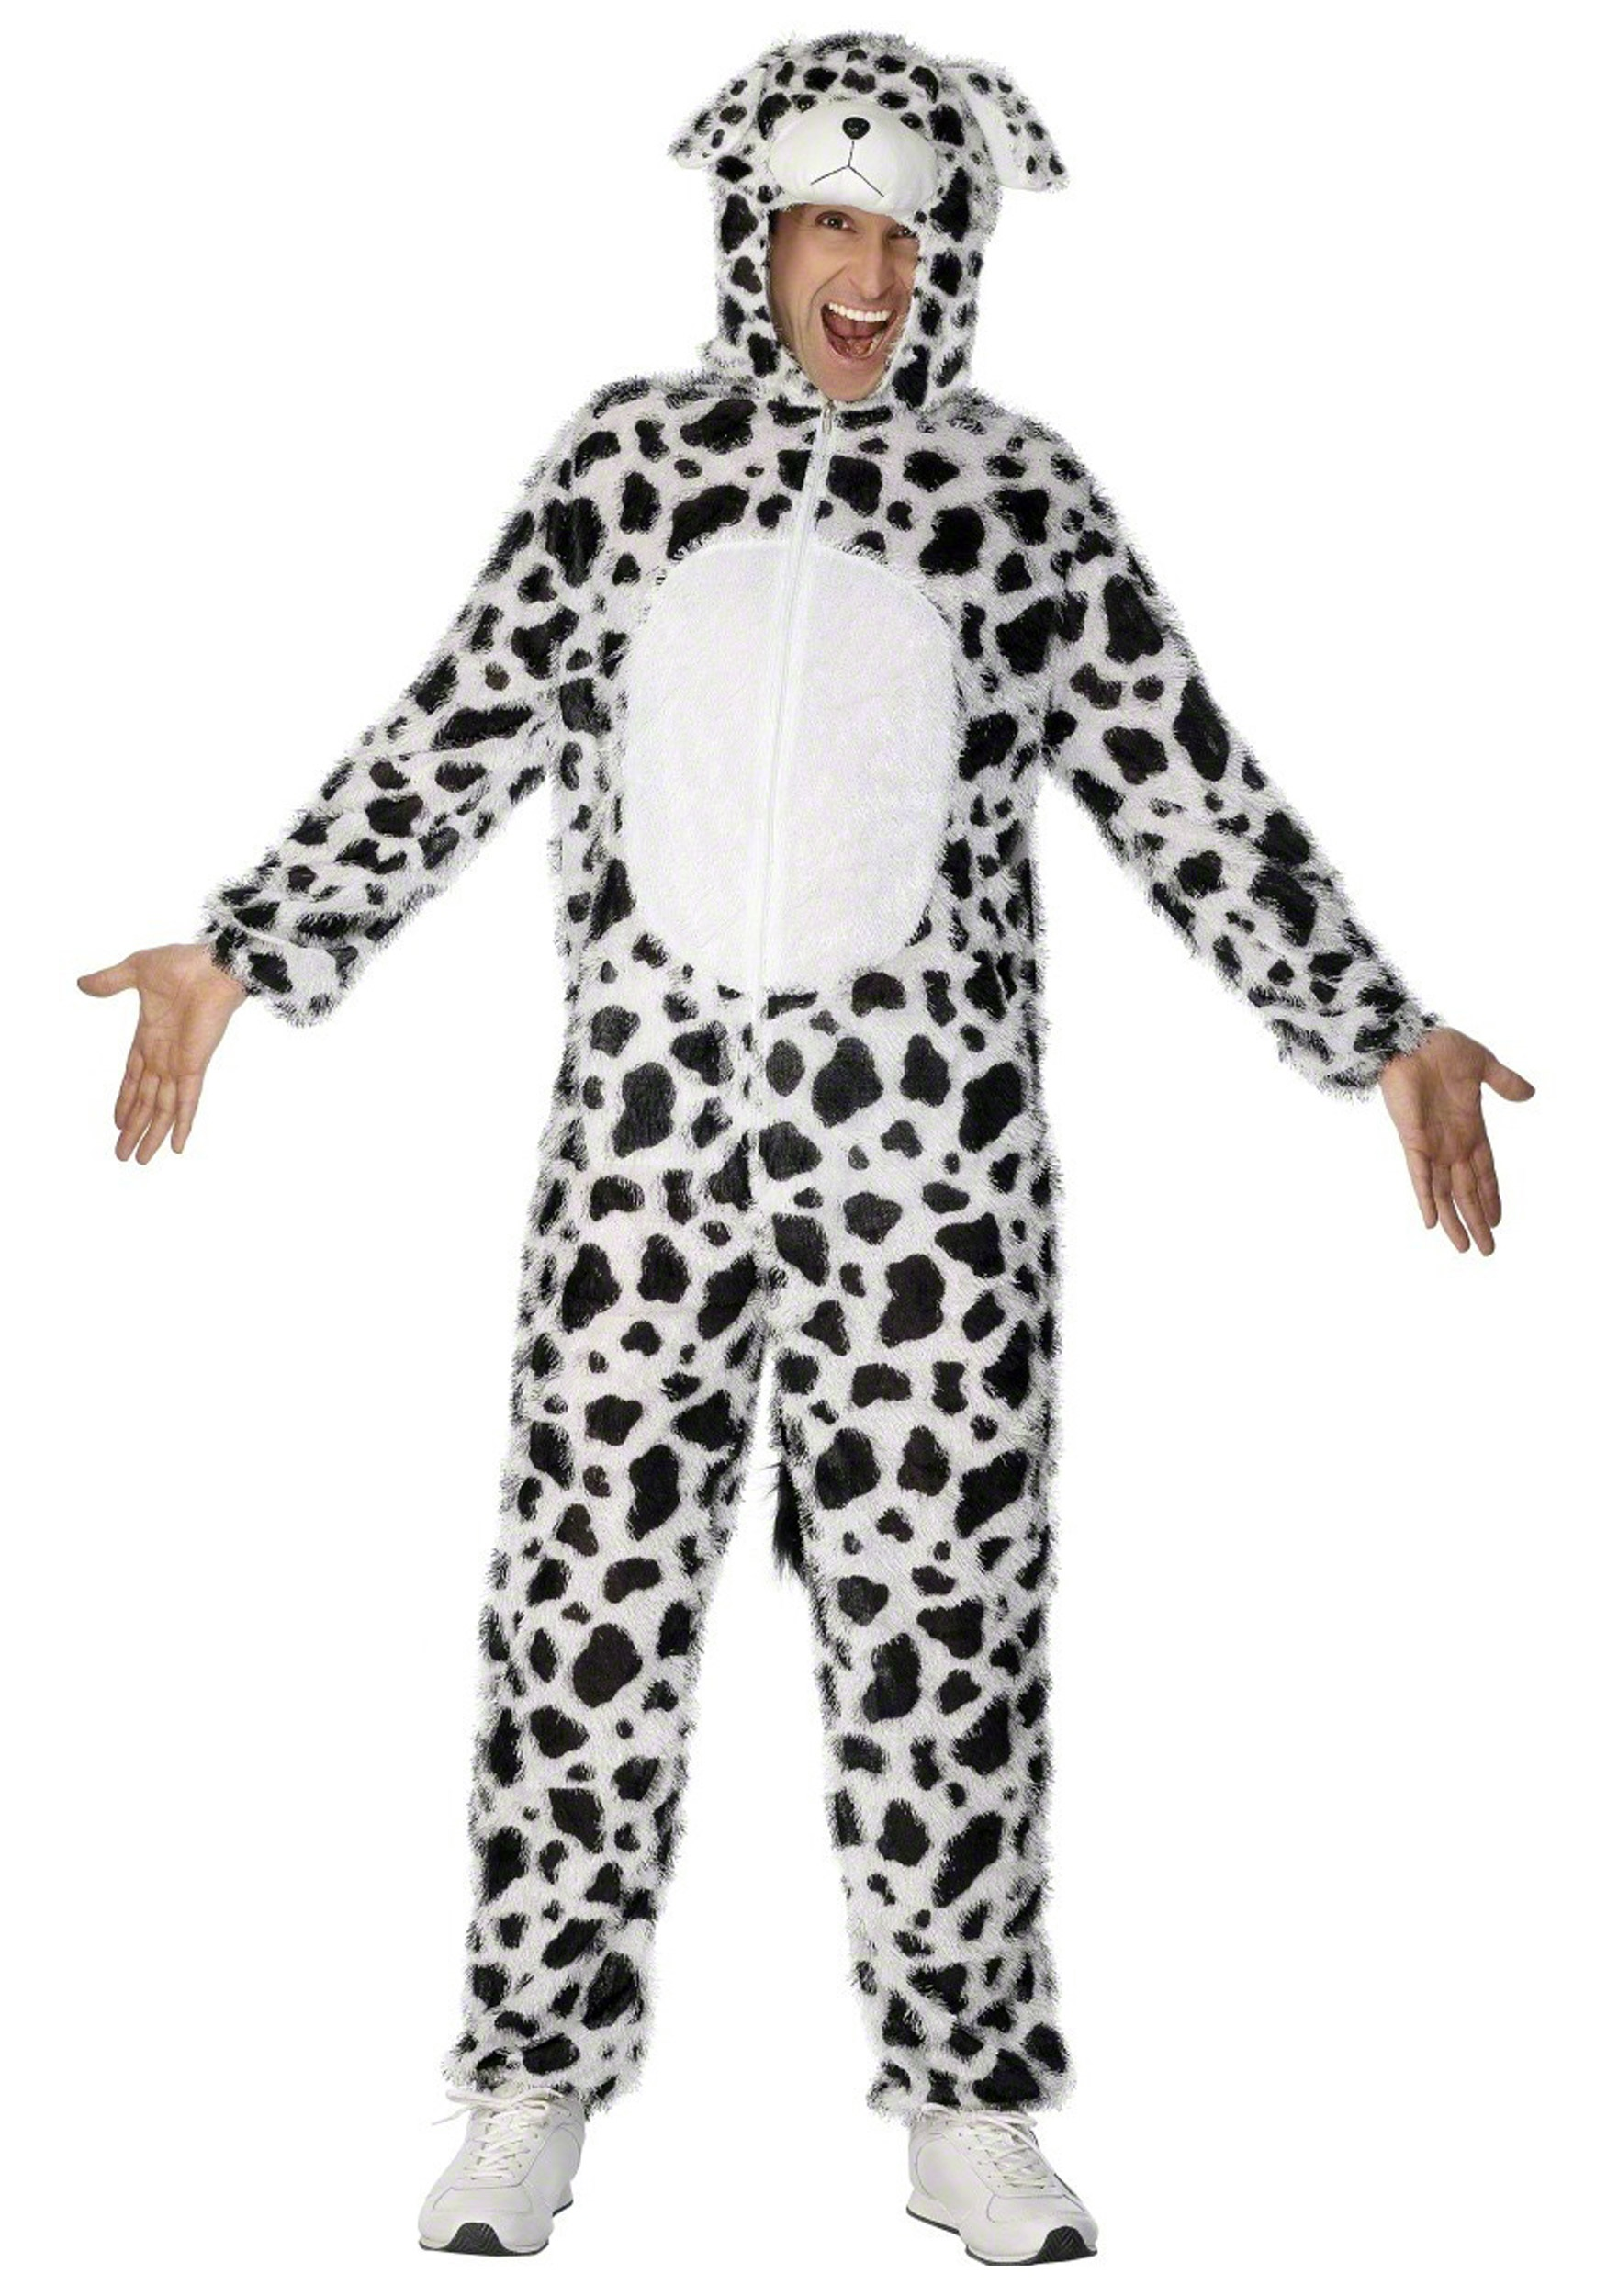 sc 1 st  Halloween Costumes : dalmatian puppy halloween costume  - Germanpascual.Com